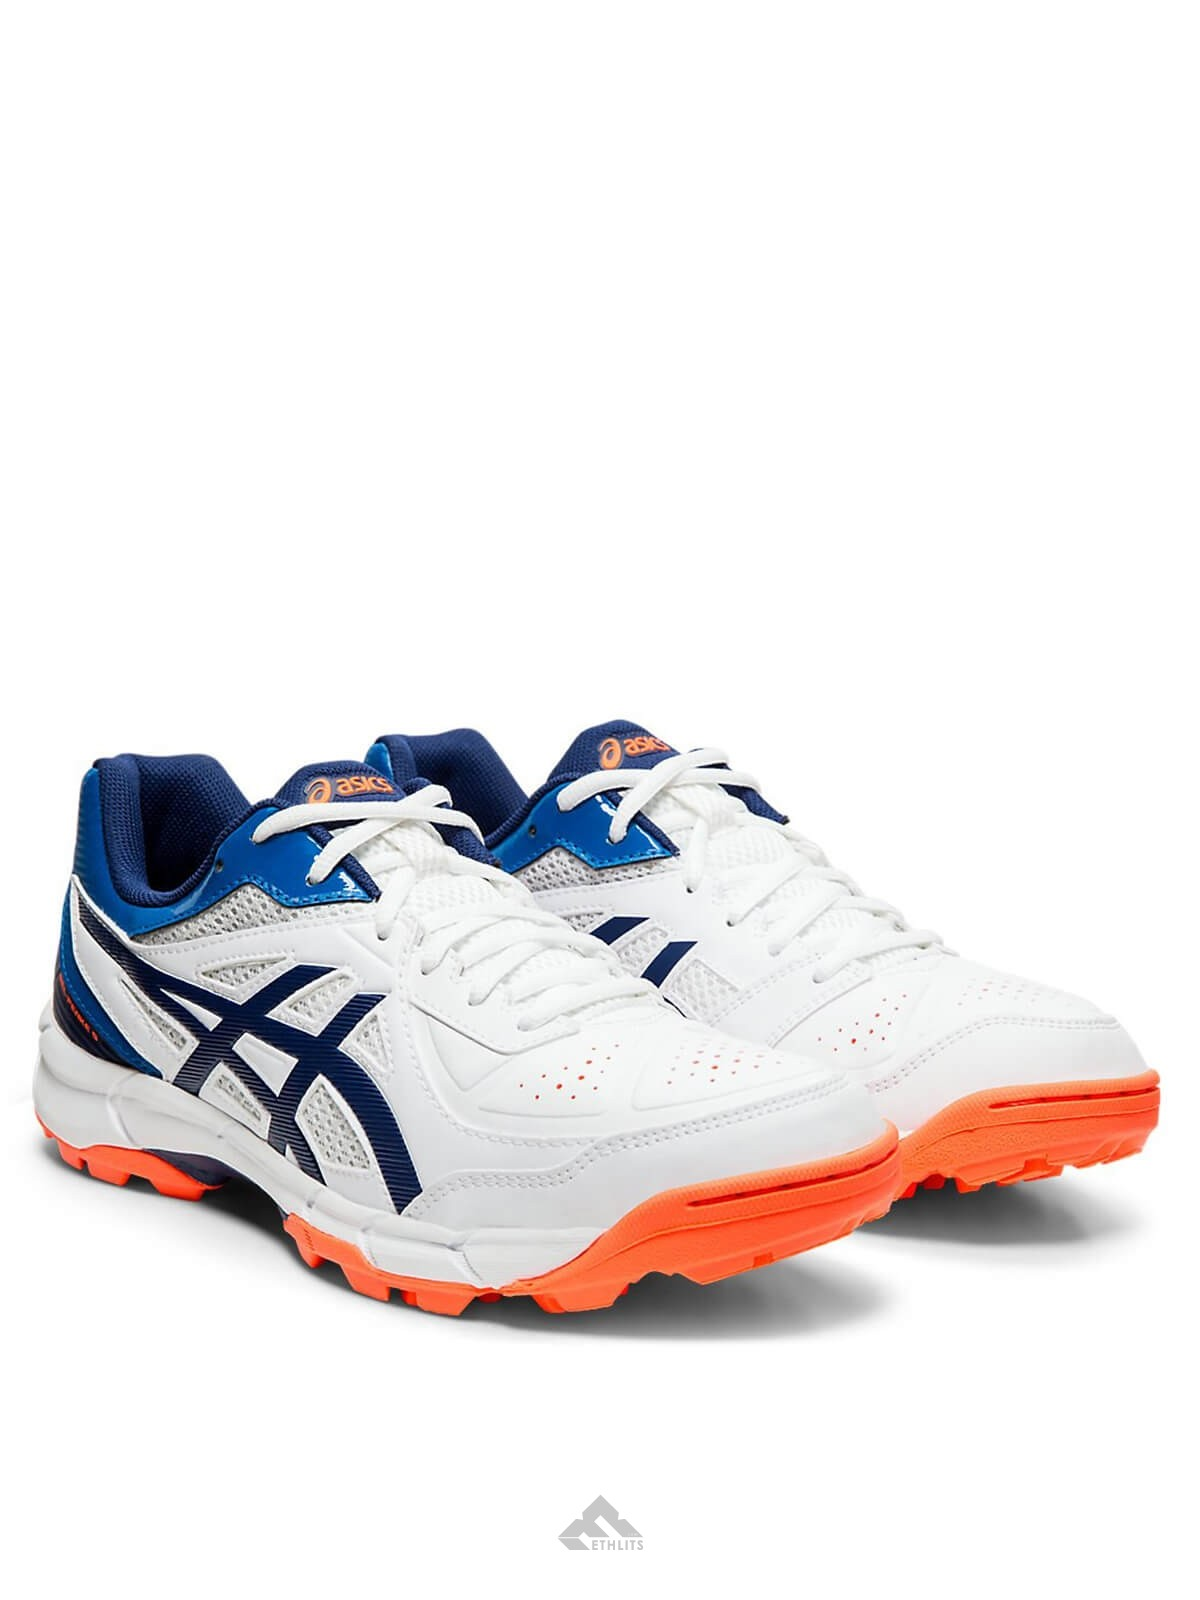 Asics Cricket Shoes Gel Peake 5 For Men  Size  UK 9  White//Black